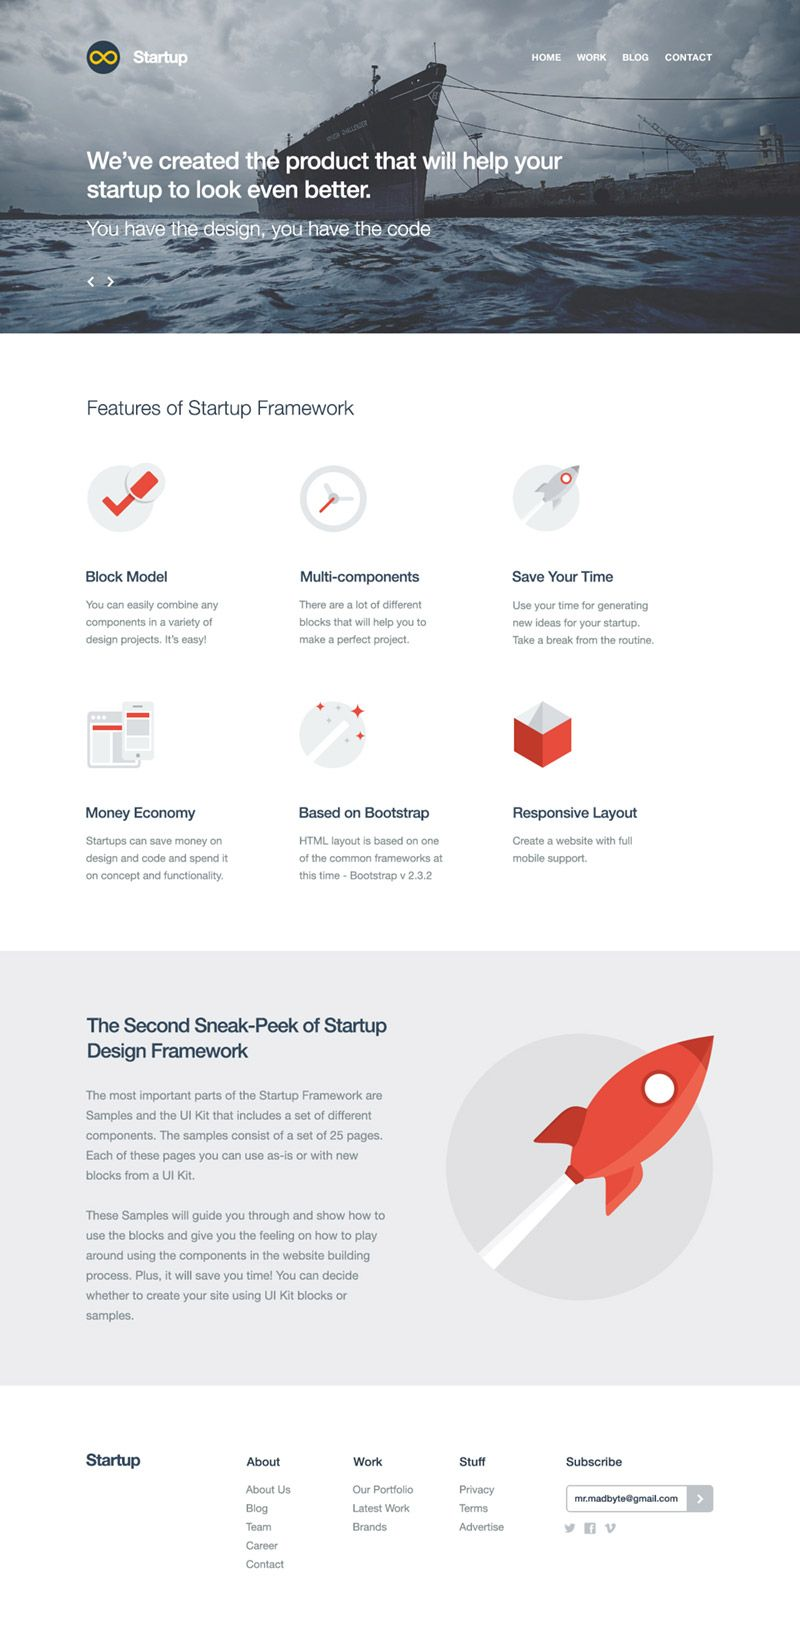 Startup Free Bootstrap Builder For Templates Themes Web Design Examples Web Design Tips Web Design